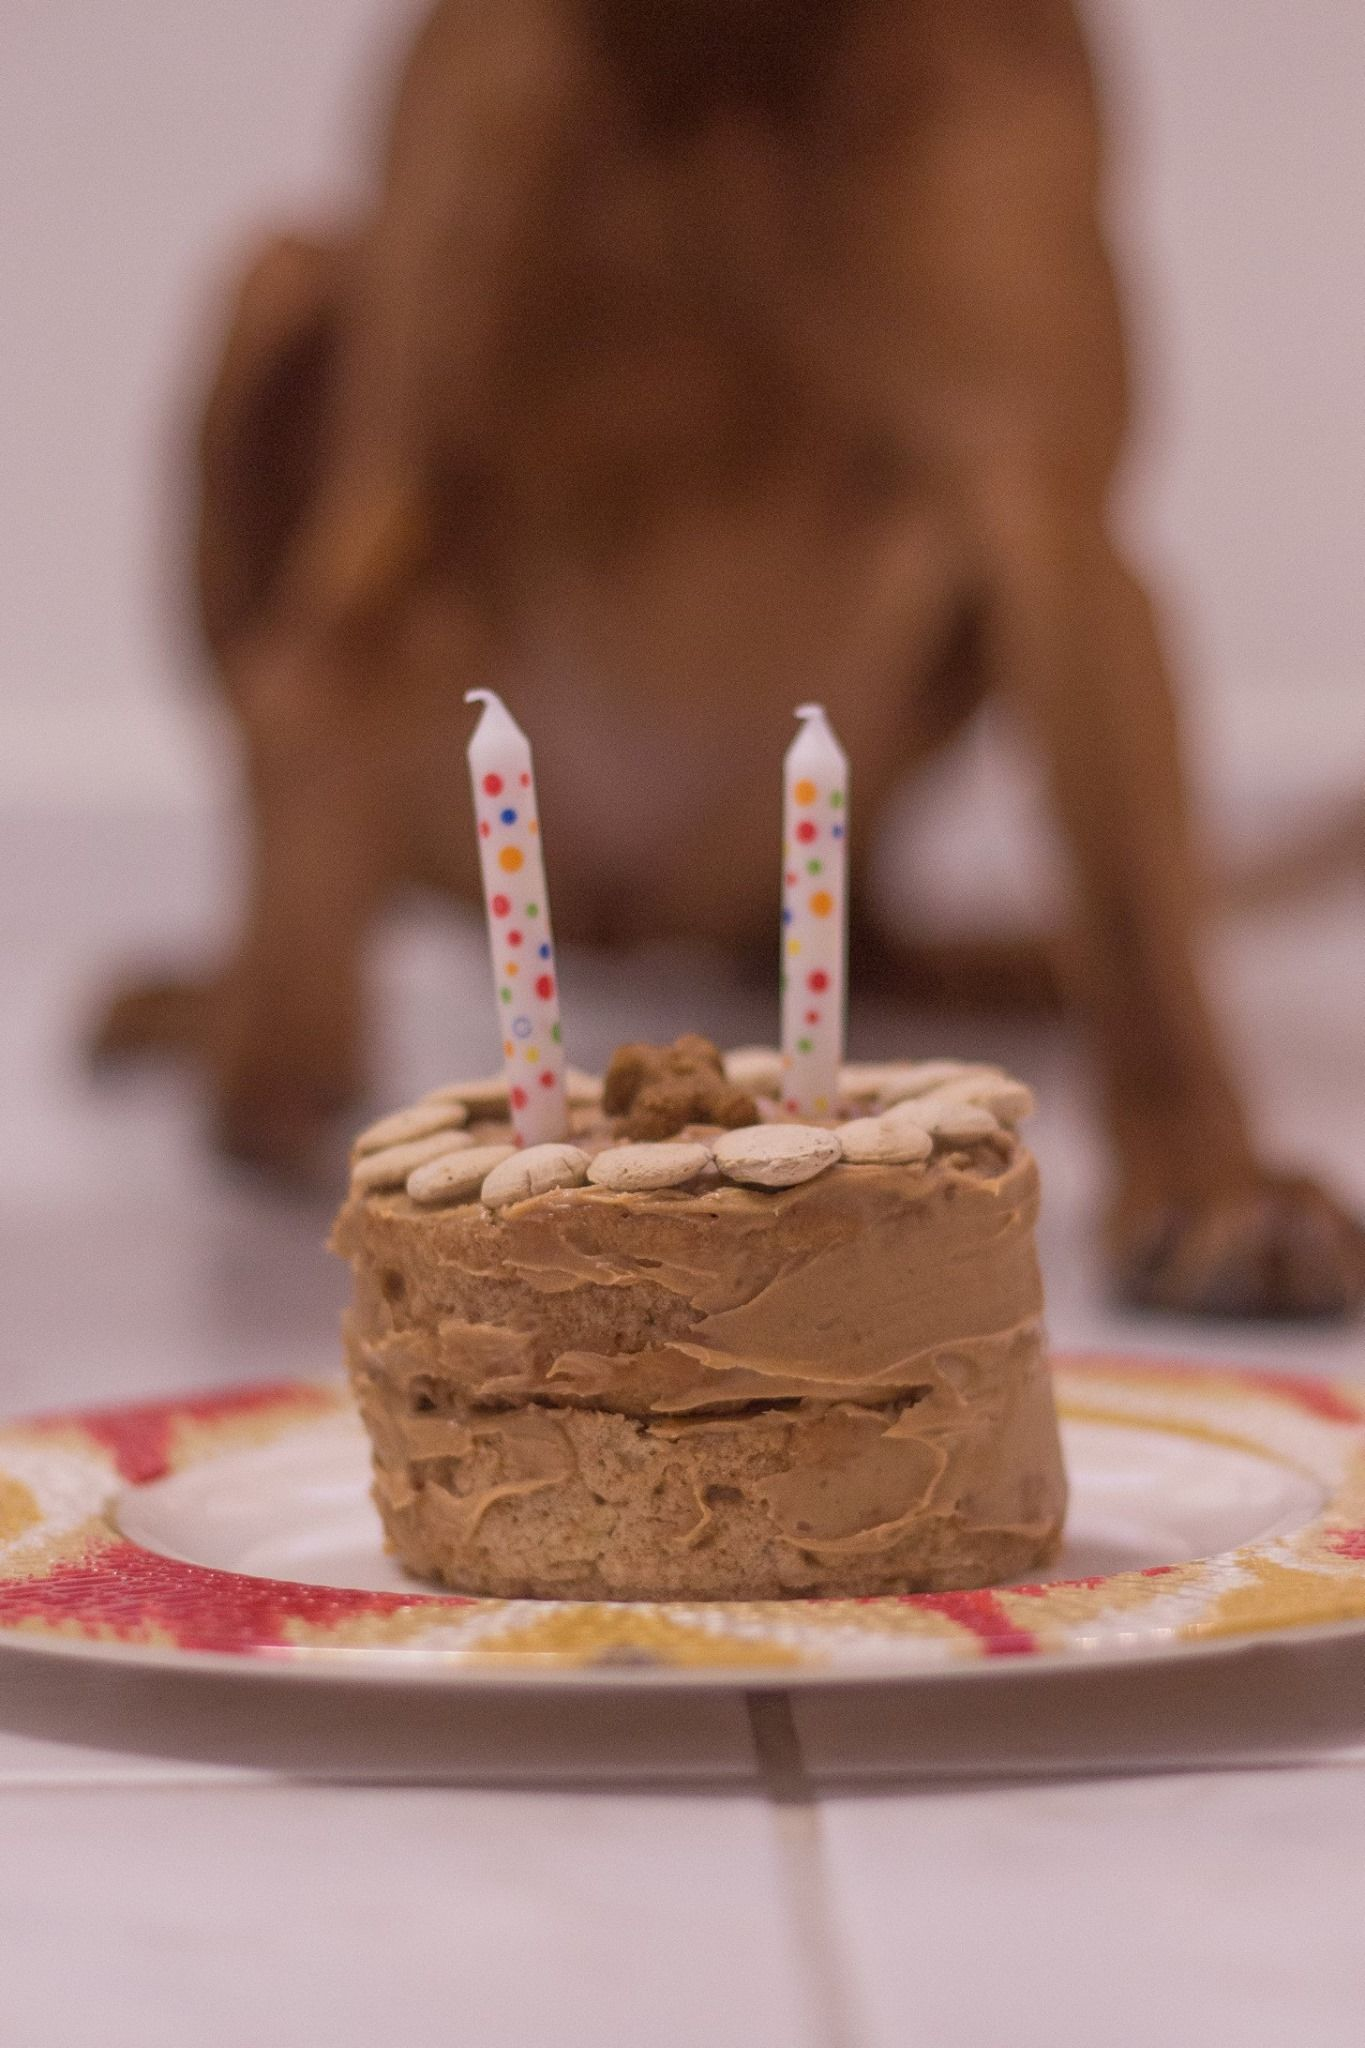 Edible Birthday Cake For Dogs Ingredients 1 12 Cup Whole Wheat